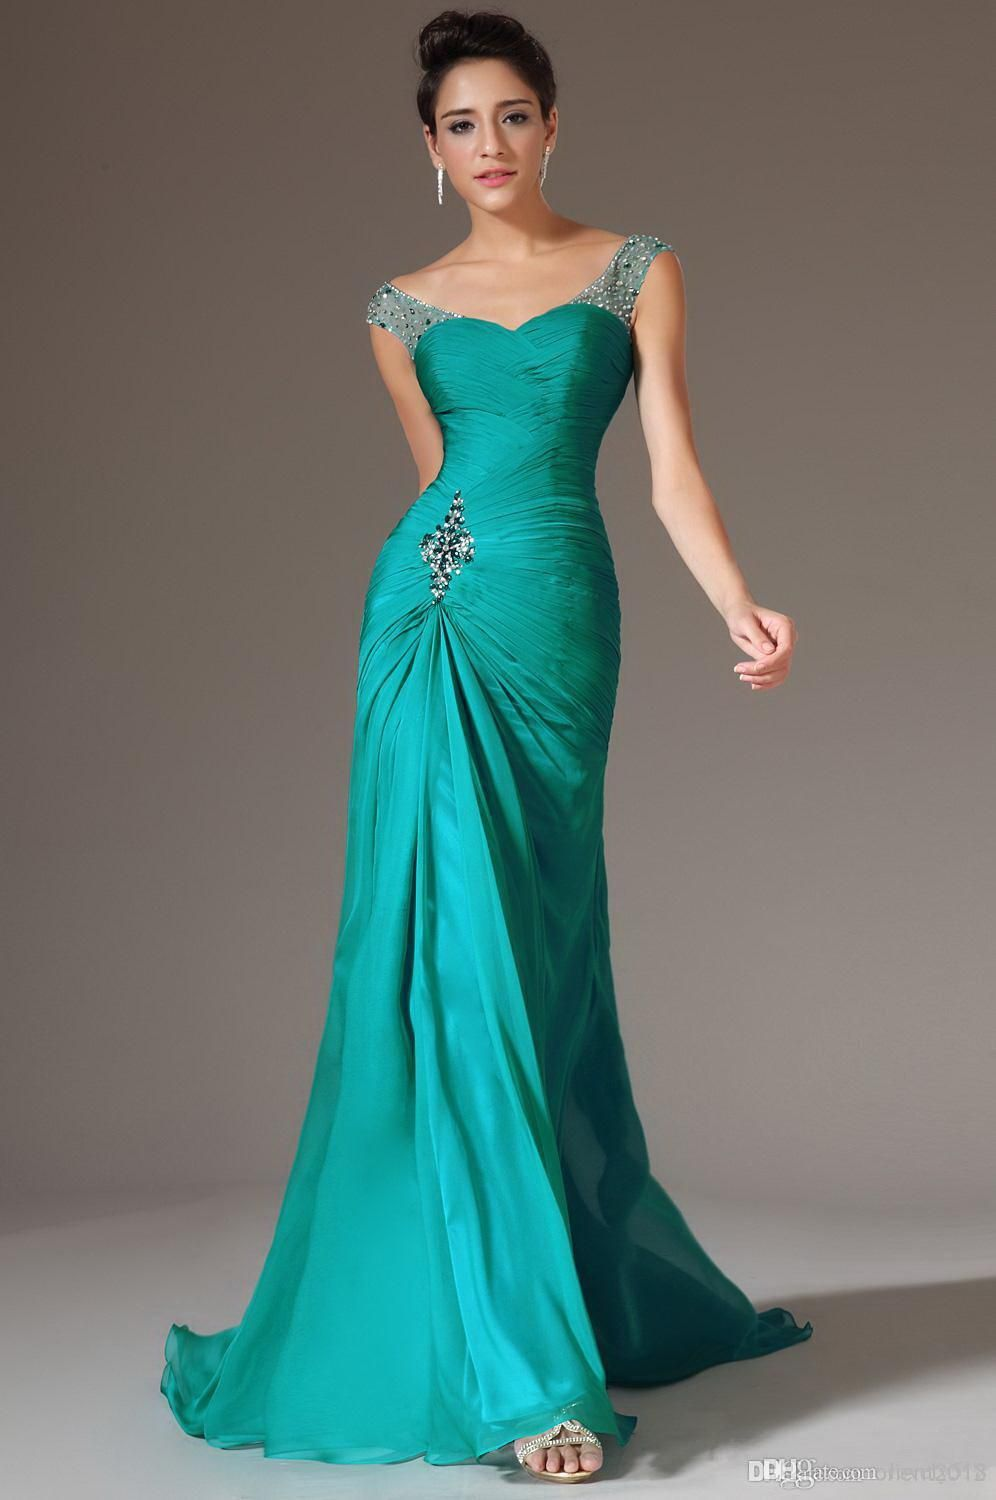 Outstanding Prom Dress Stores In Austin Ideas - All Wedding Dresses ...